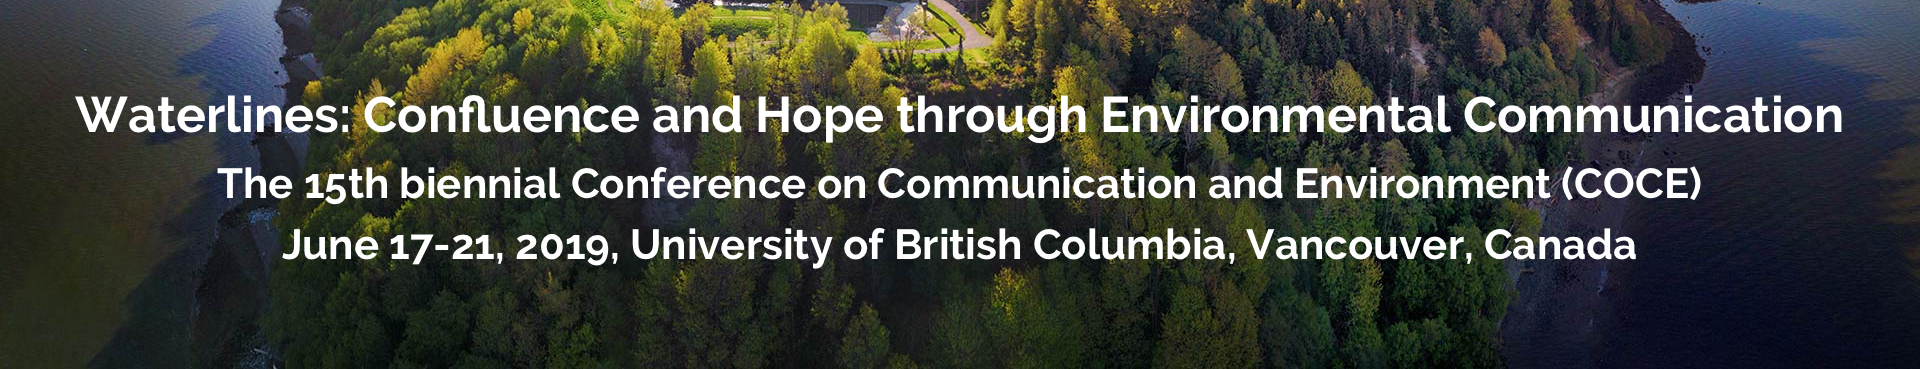 Waterlines: Confluence and Hope through Environmental Communication. The 15th biennial Conference on Communication and Environment (COCE). June 17-21, 2019, University of British Columbia, Vancouver, Canada